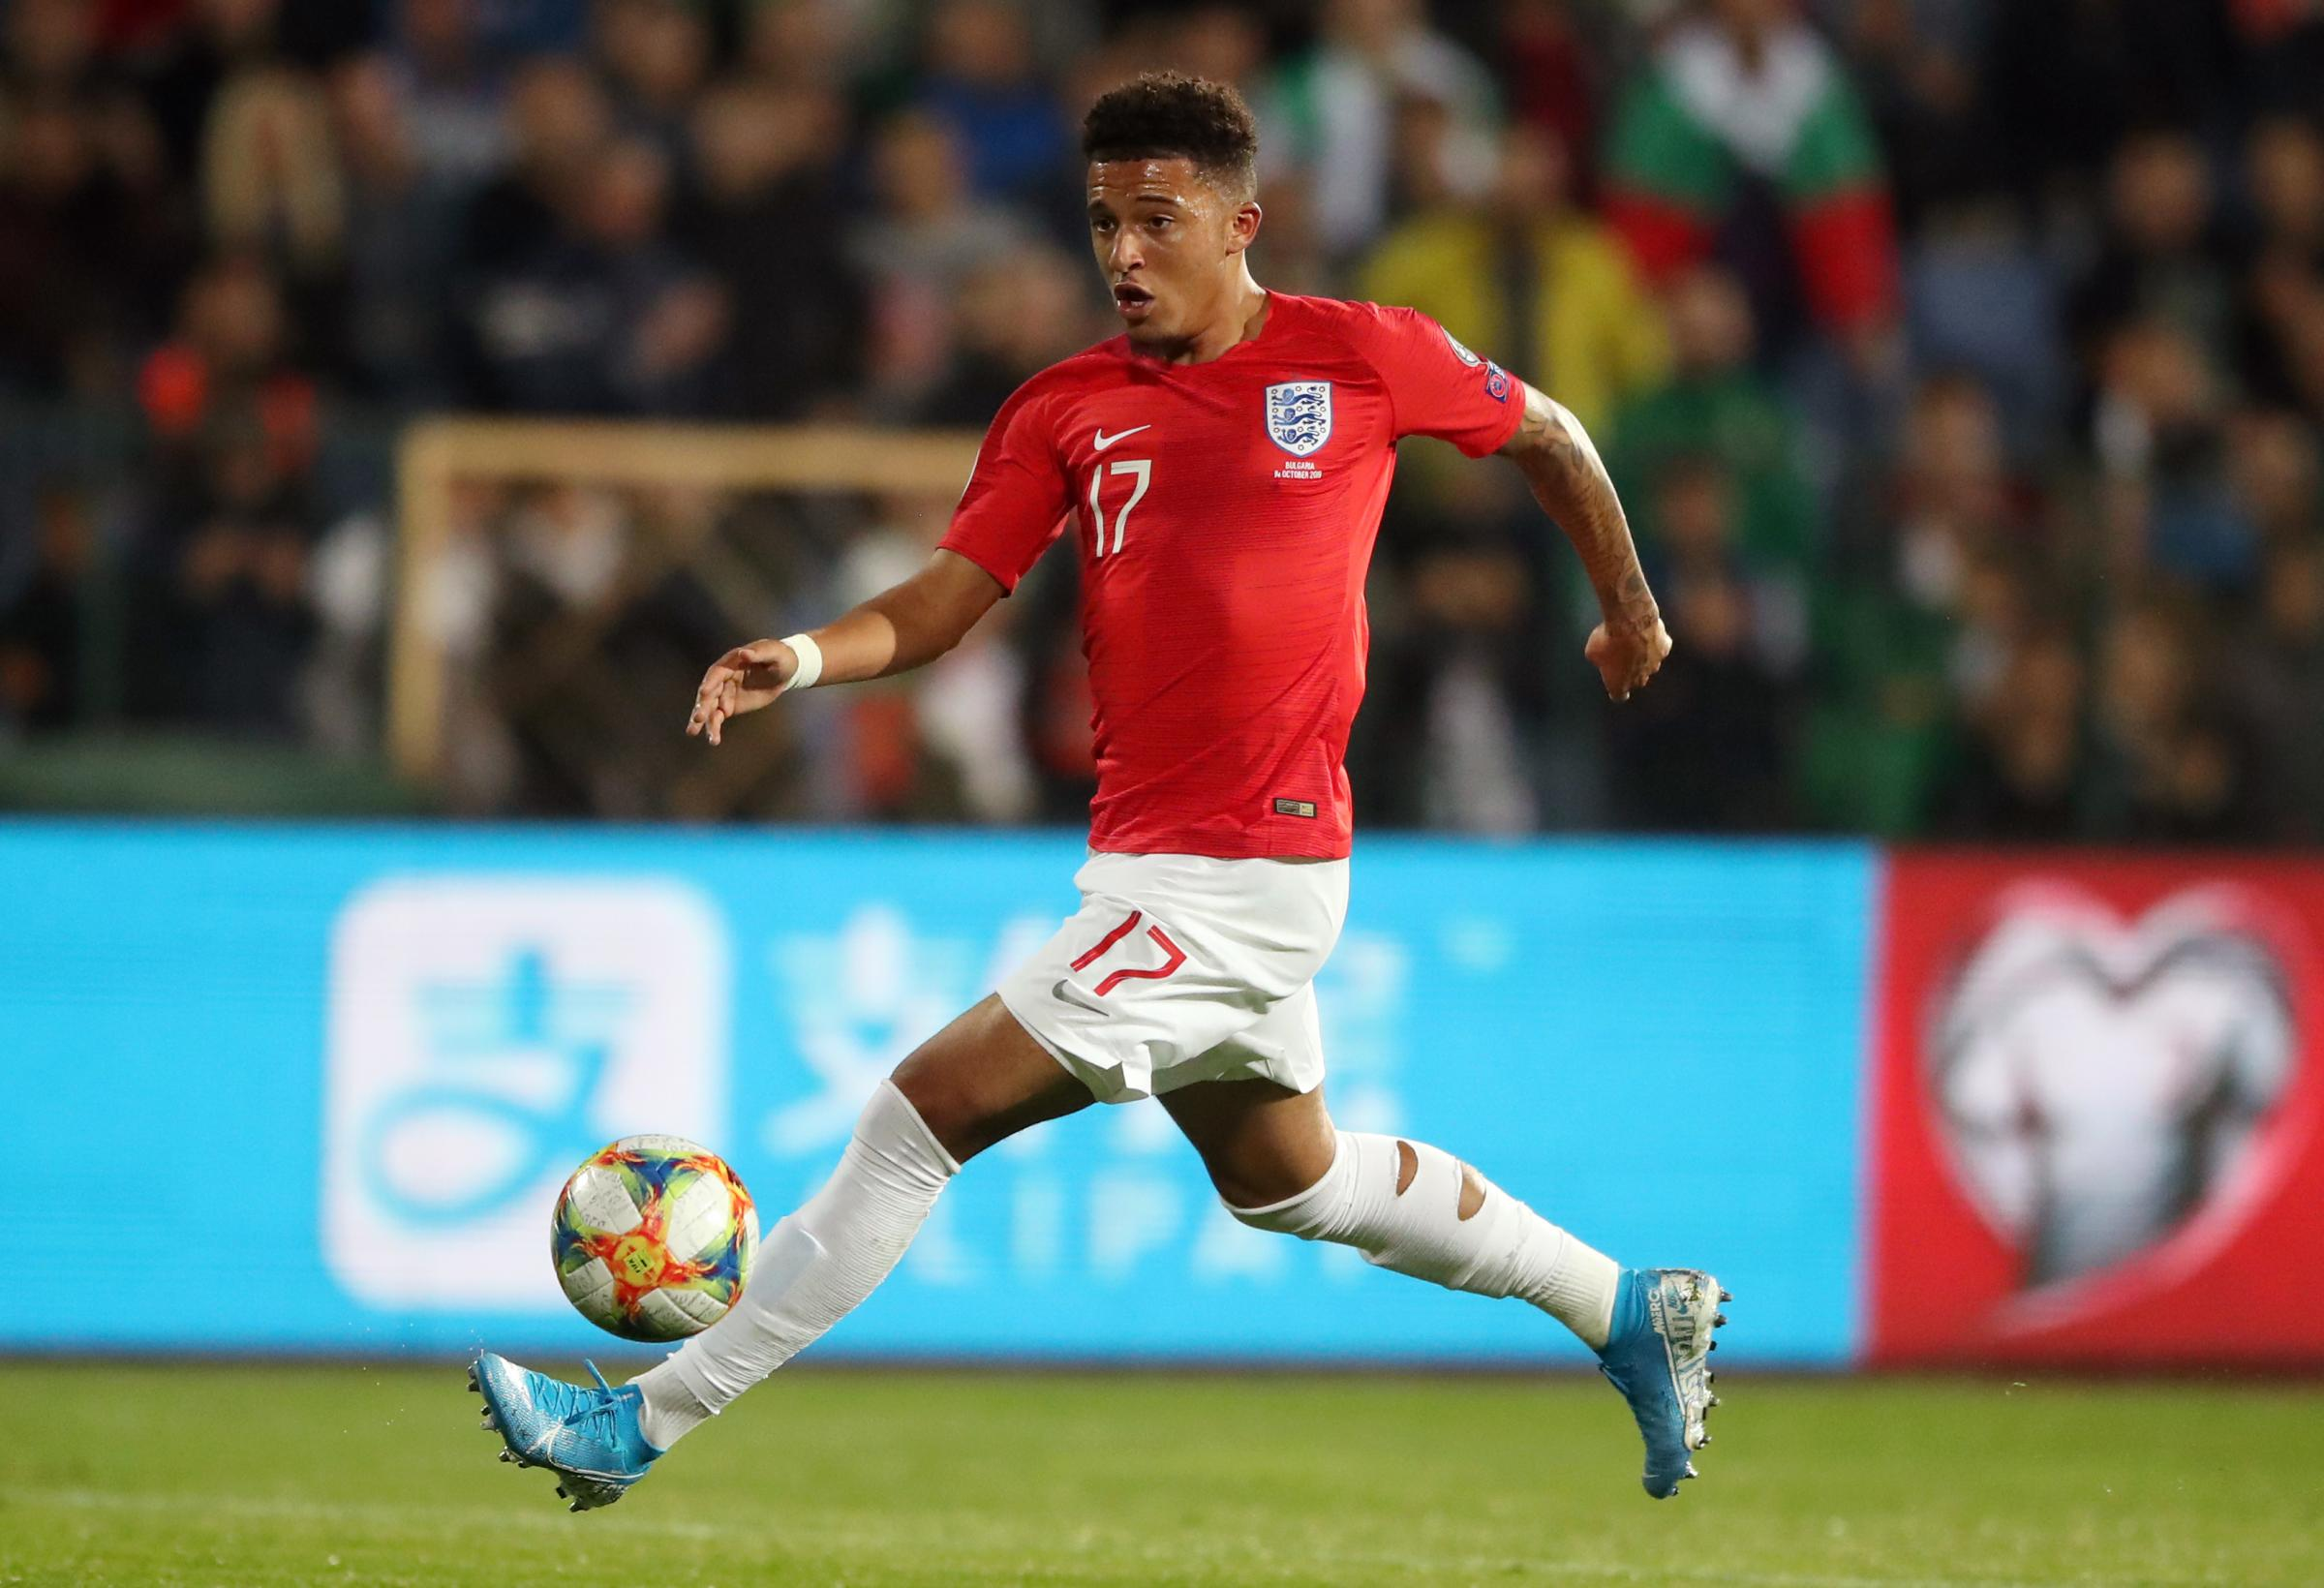 Man United not giving up on Sancho - Premier League rumours